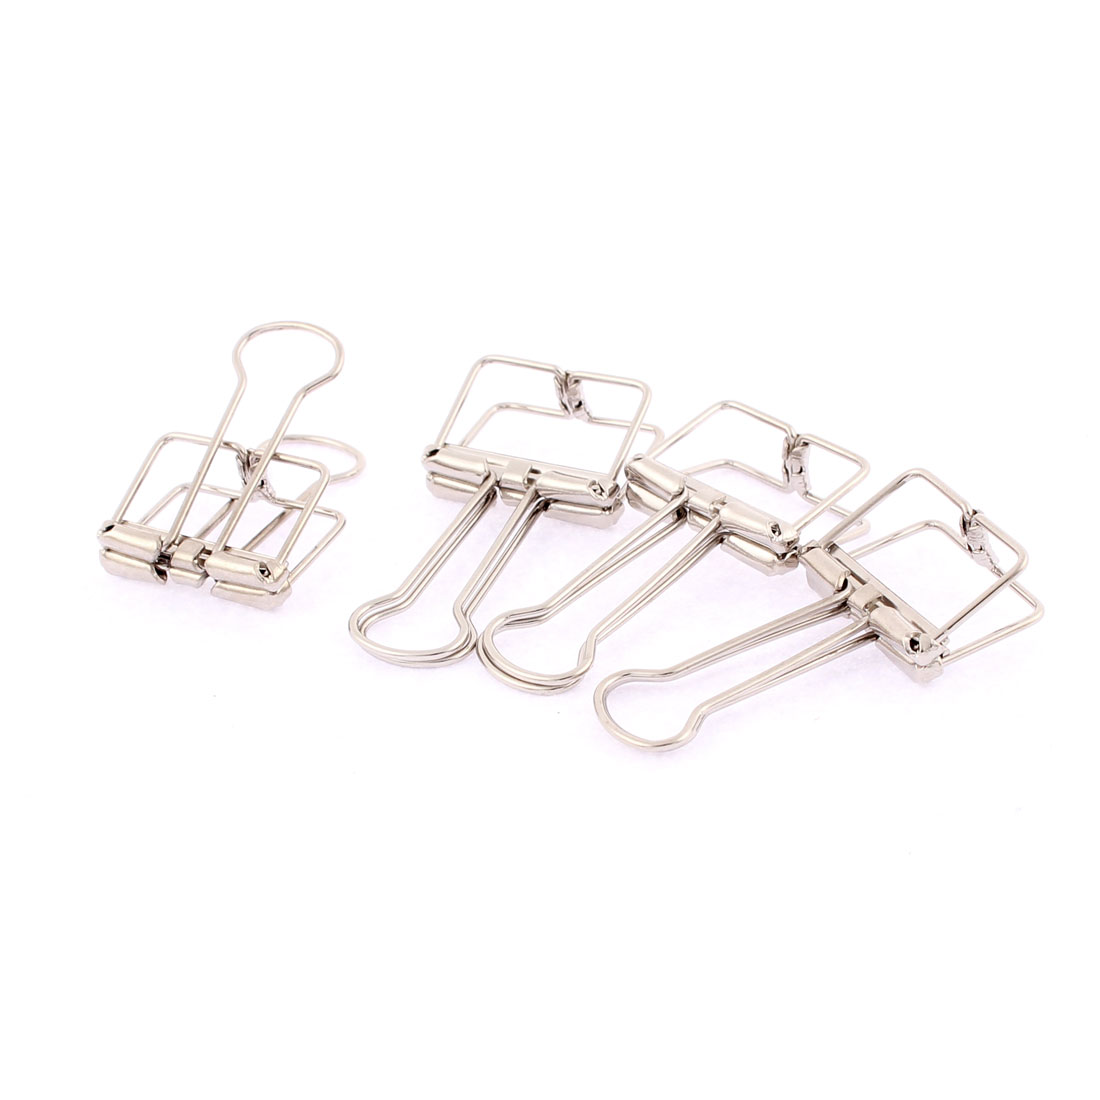 Silver Tone Metal 19mm Width Wire Binder Clips 4 Pcs